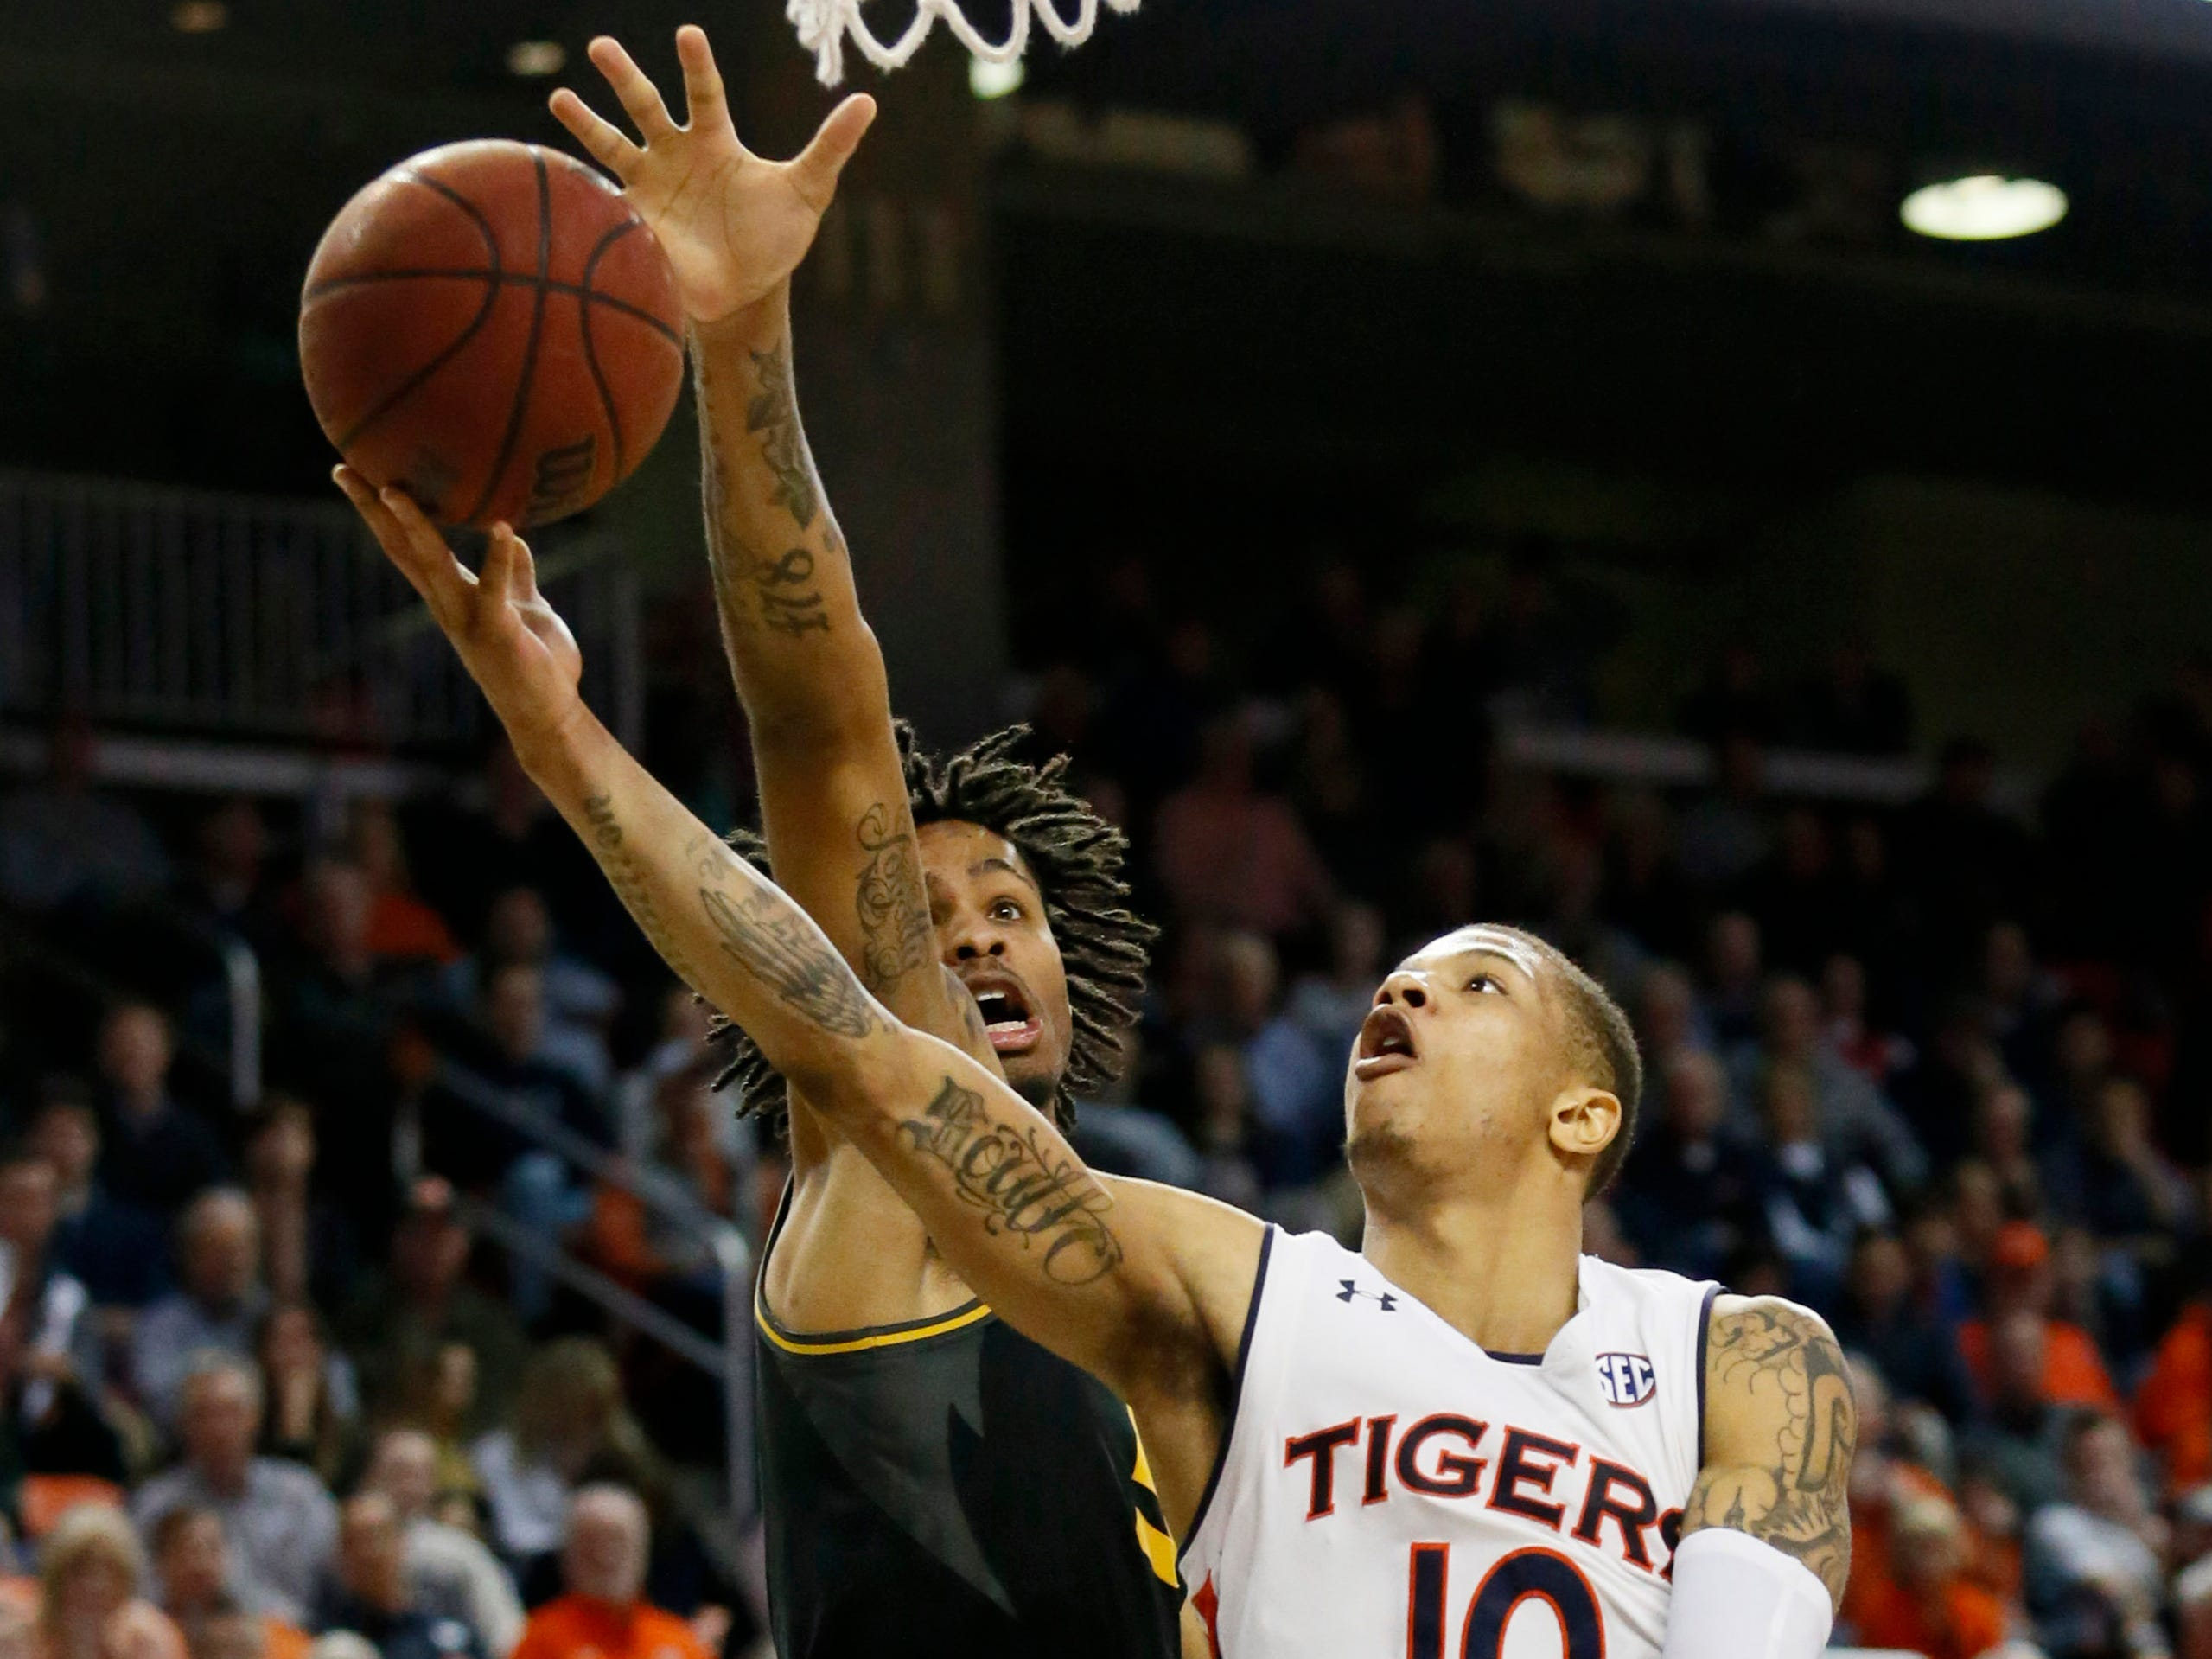 Jan 30, 2019; Auburn, AL, USA; Auburn Tigers guard Samir Doughty (10) shoots against Missouri Tigers forward Mitchell Smith (5) during the second half at Auburn Arena. Mandatory Credit: John Reed-USA TODAY Sports